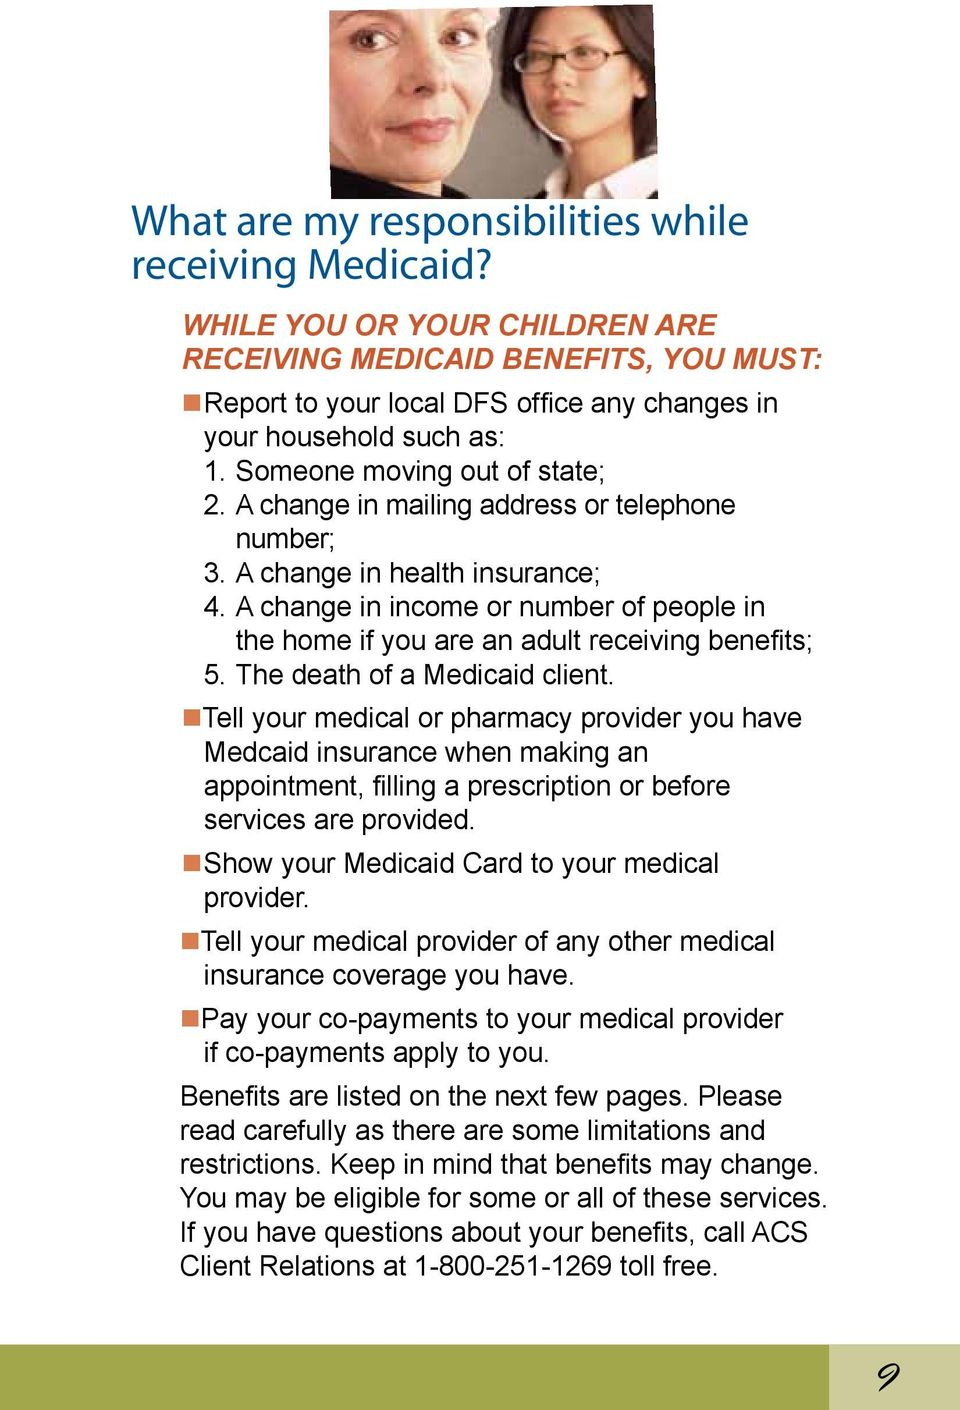 A change in income or number of people in the home if you are an adult receiving benefits; 5. The death of a Medicaid client.